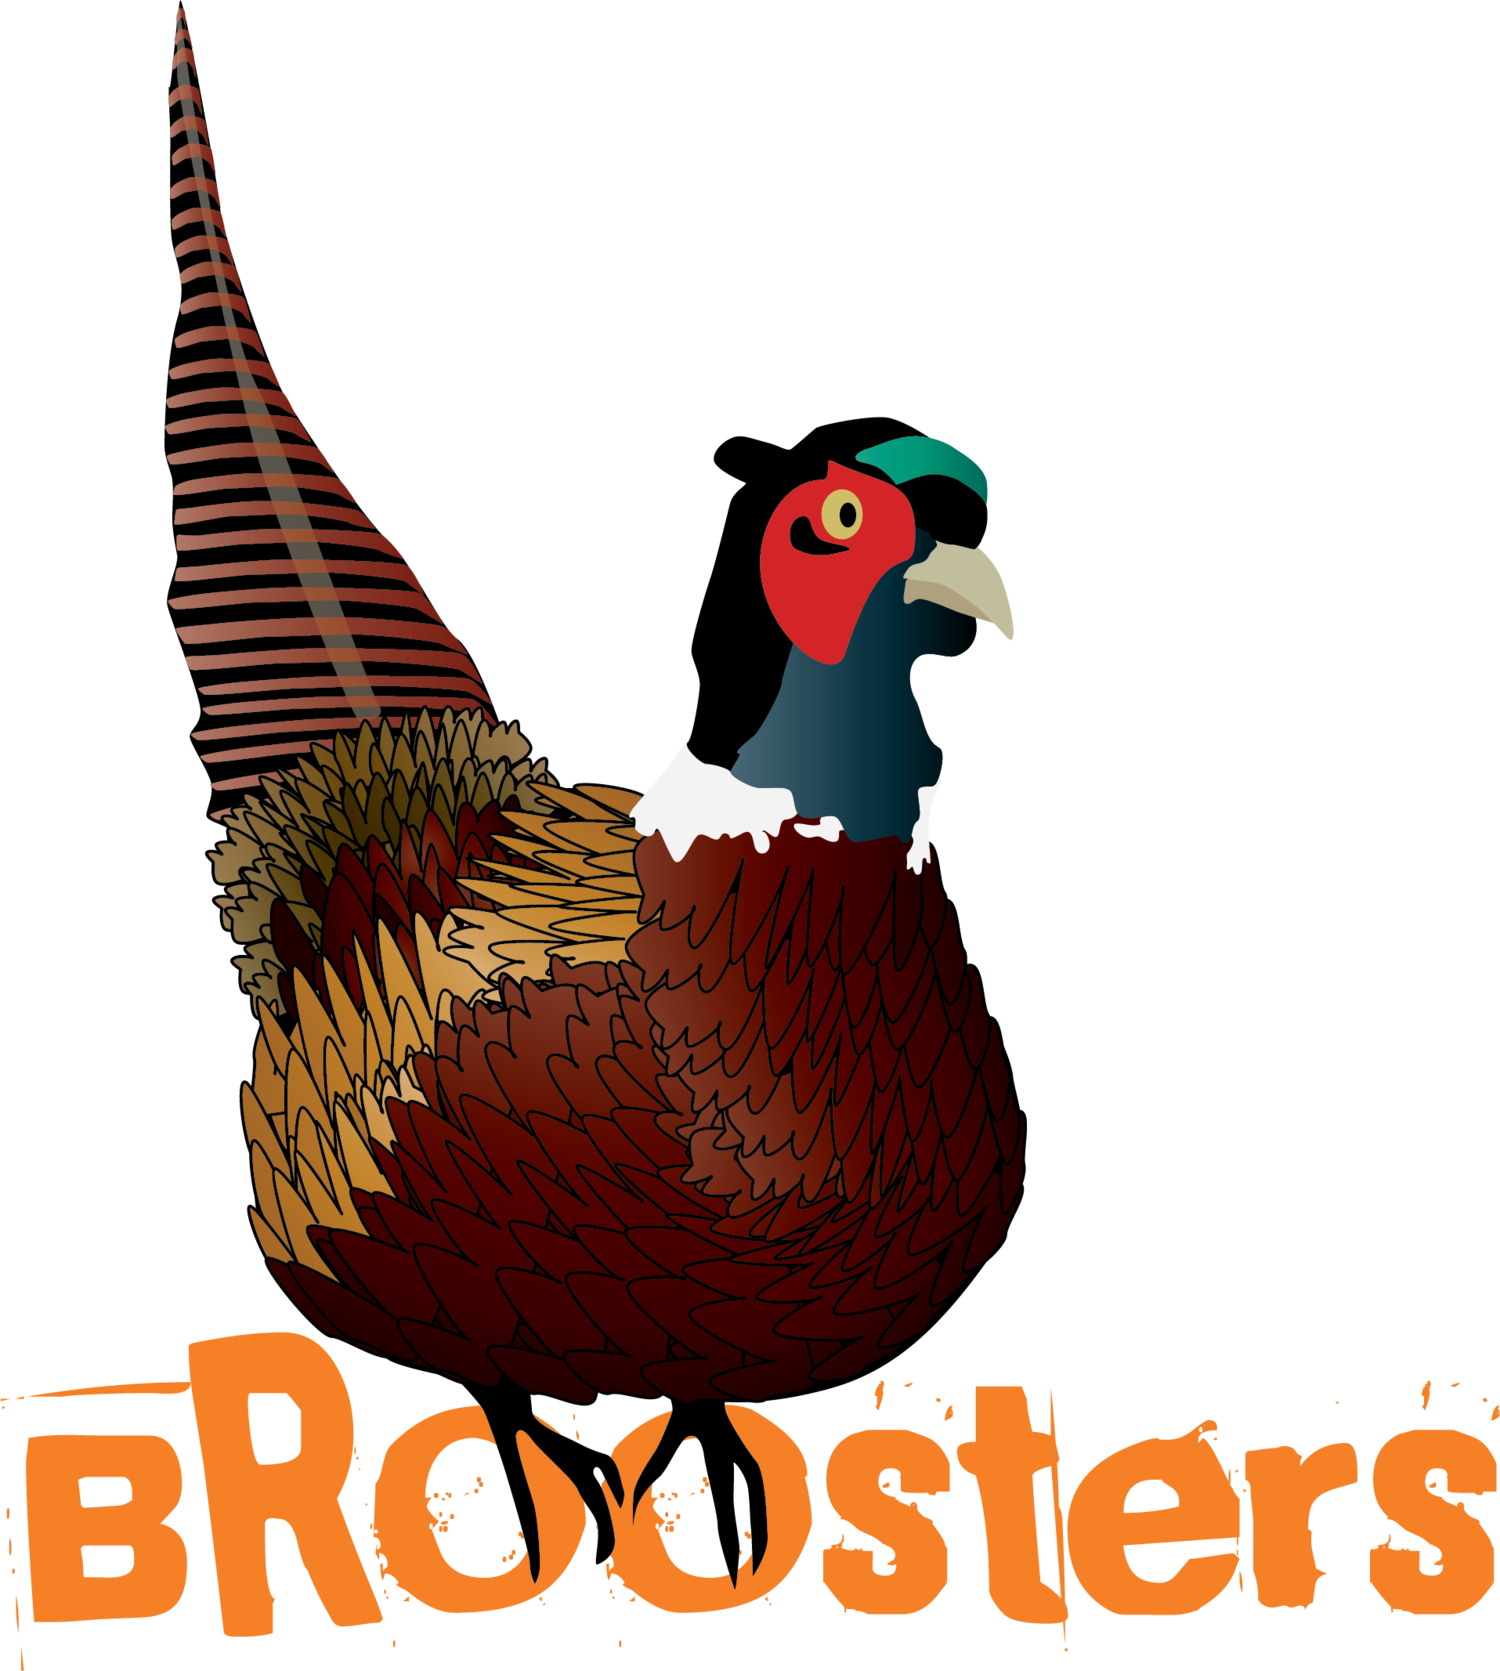 Broosters Dakota Cuisine